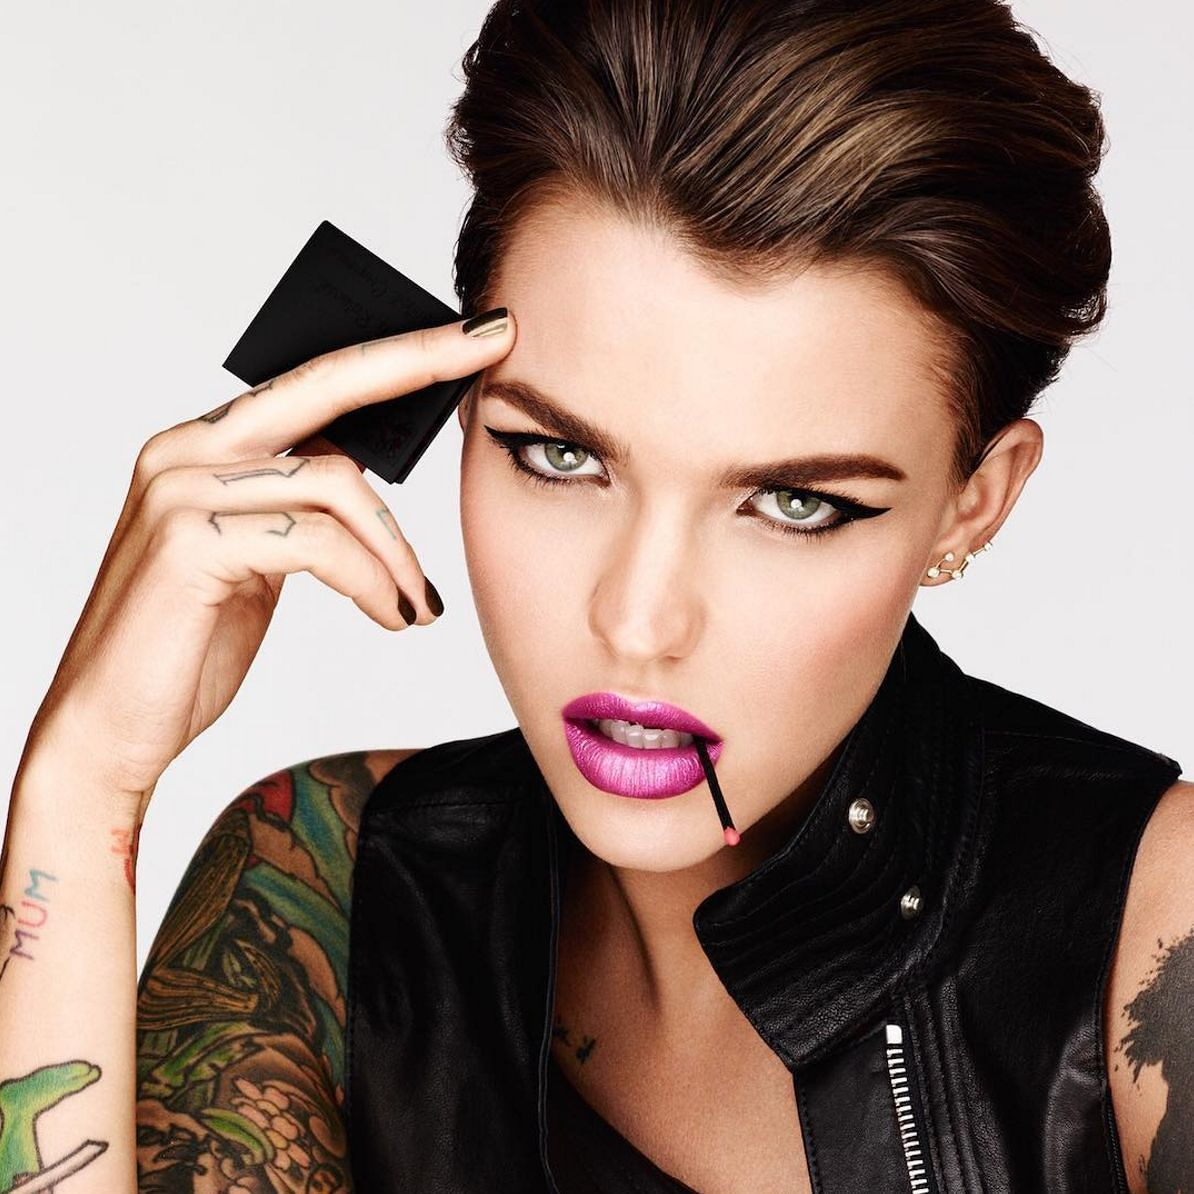 rubyrose is killingit as the new face of